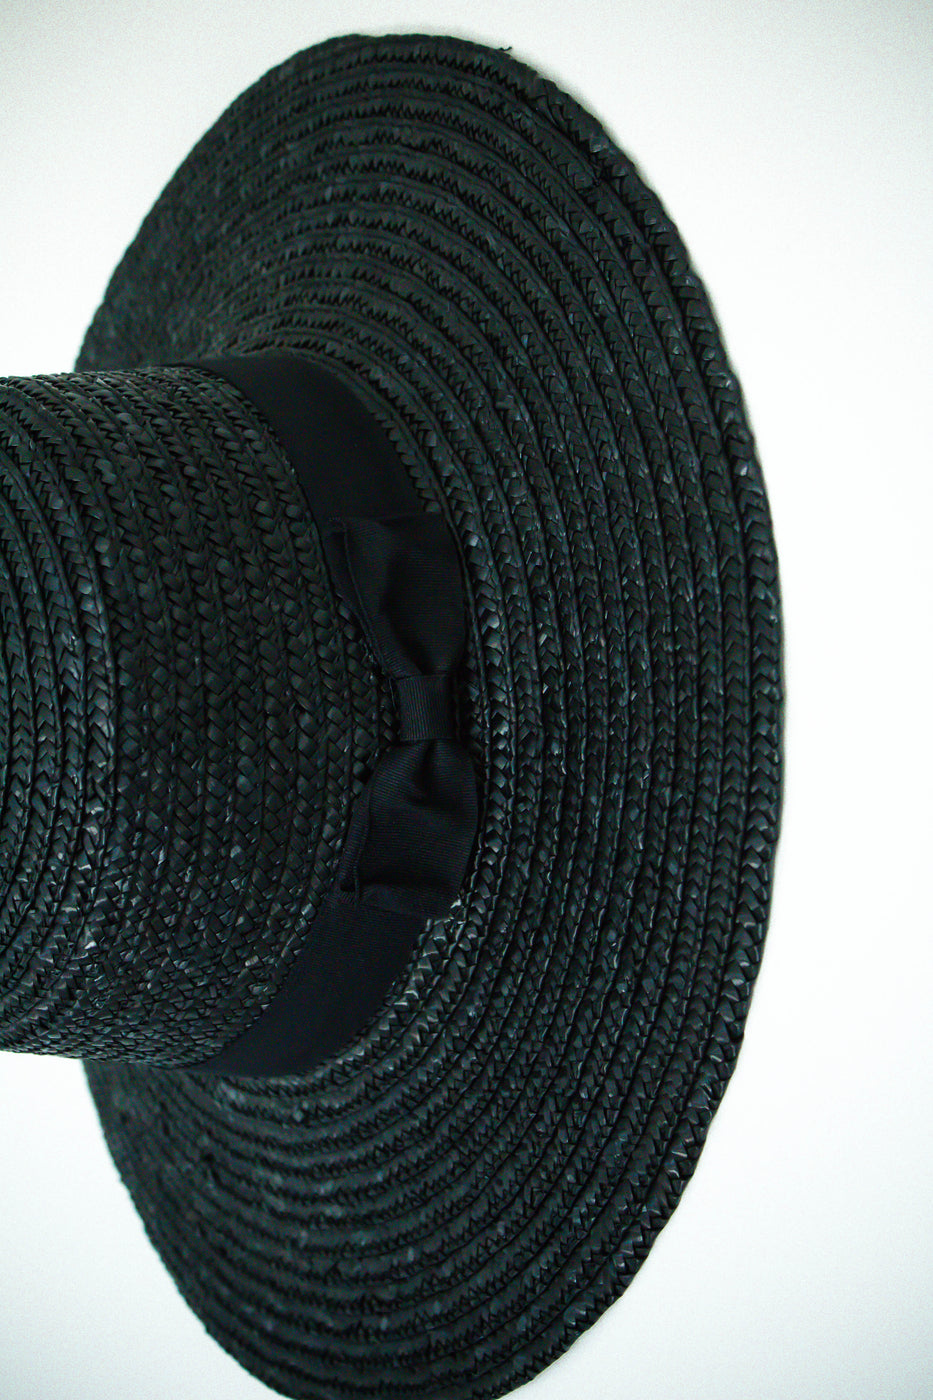 Black Straw Sun Hat For Women | ROOLEE